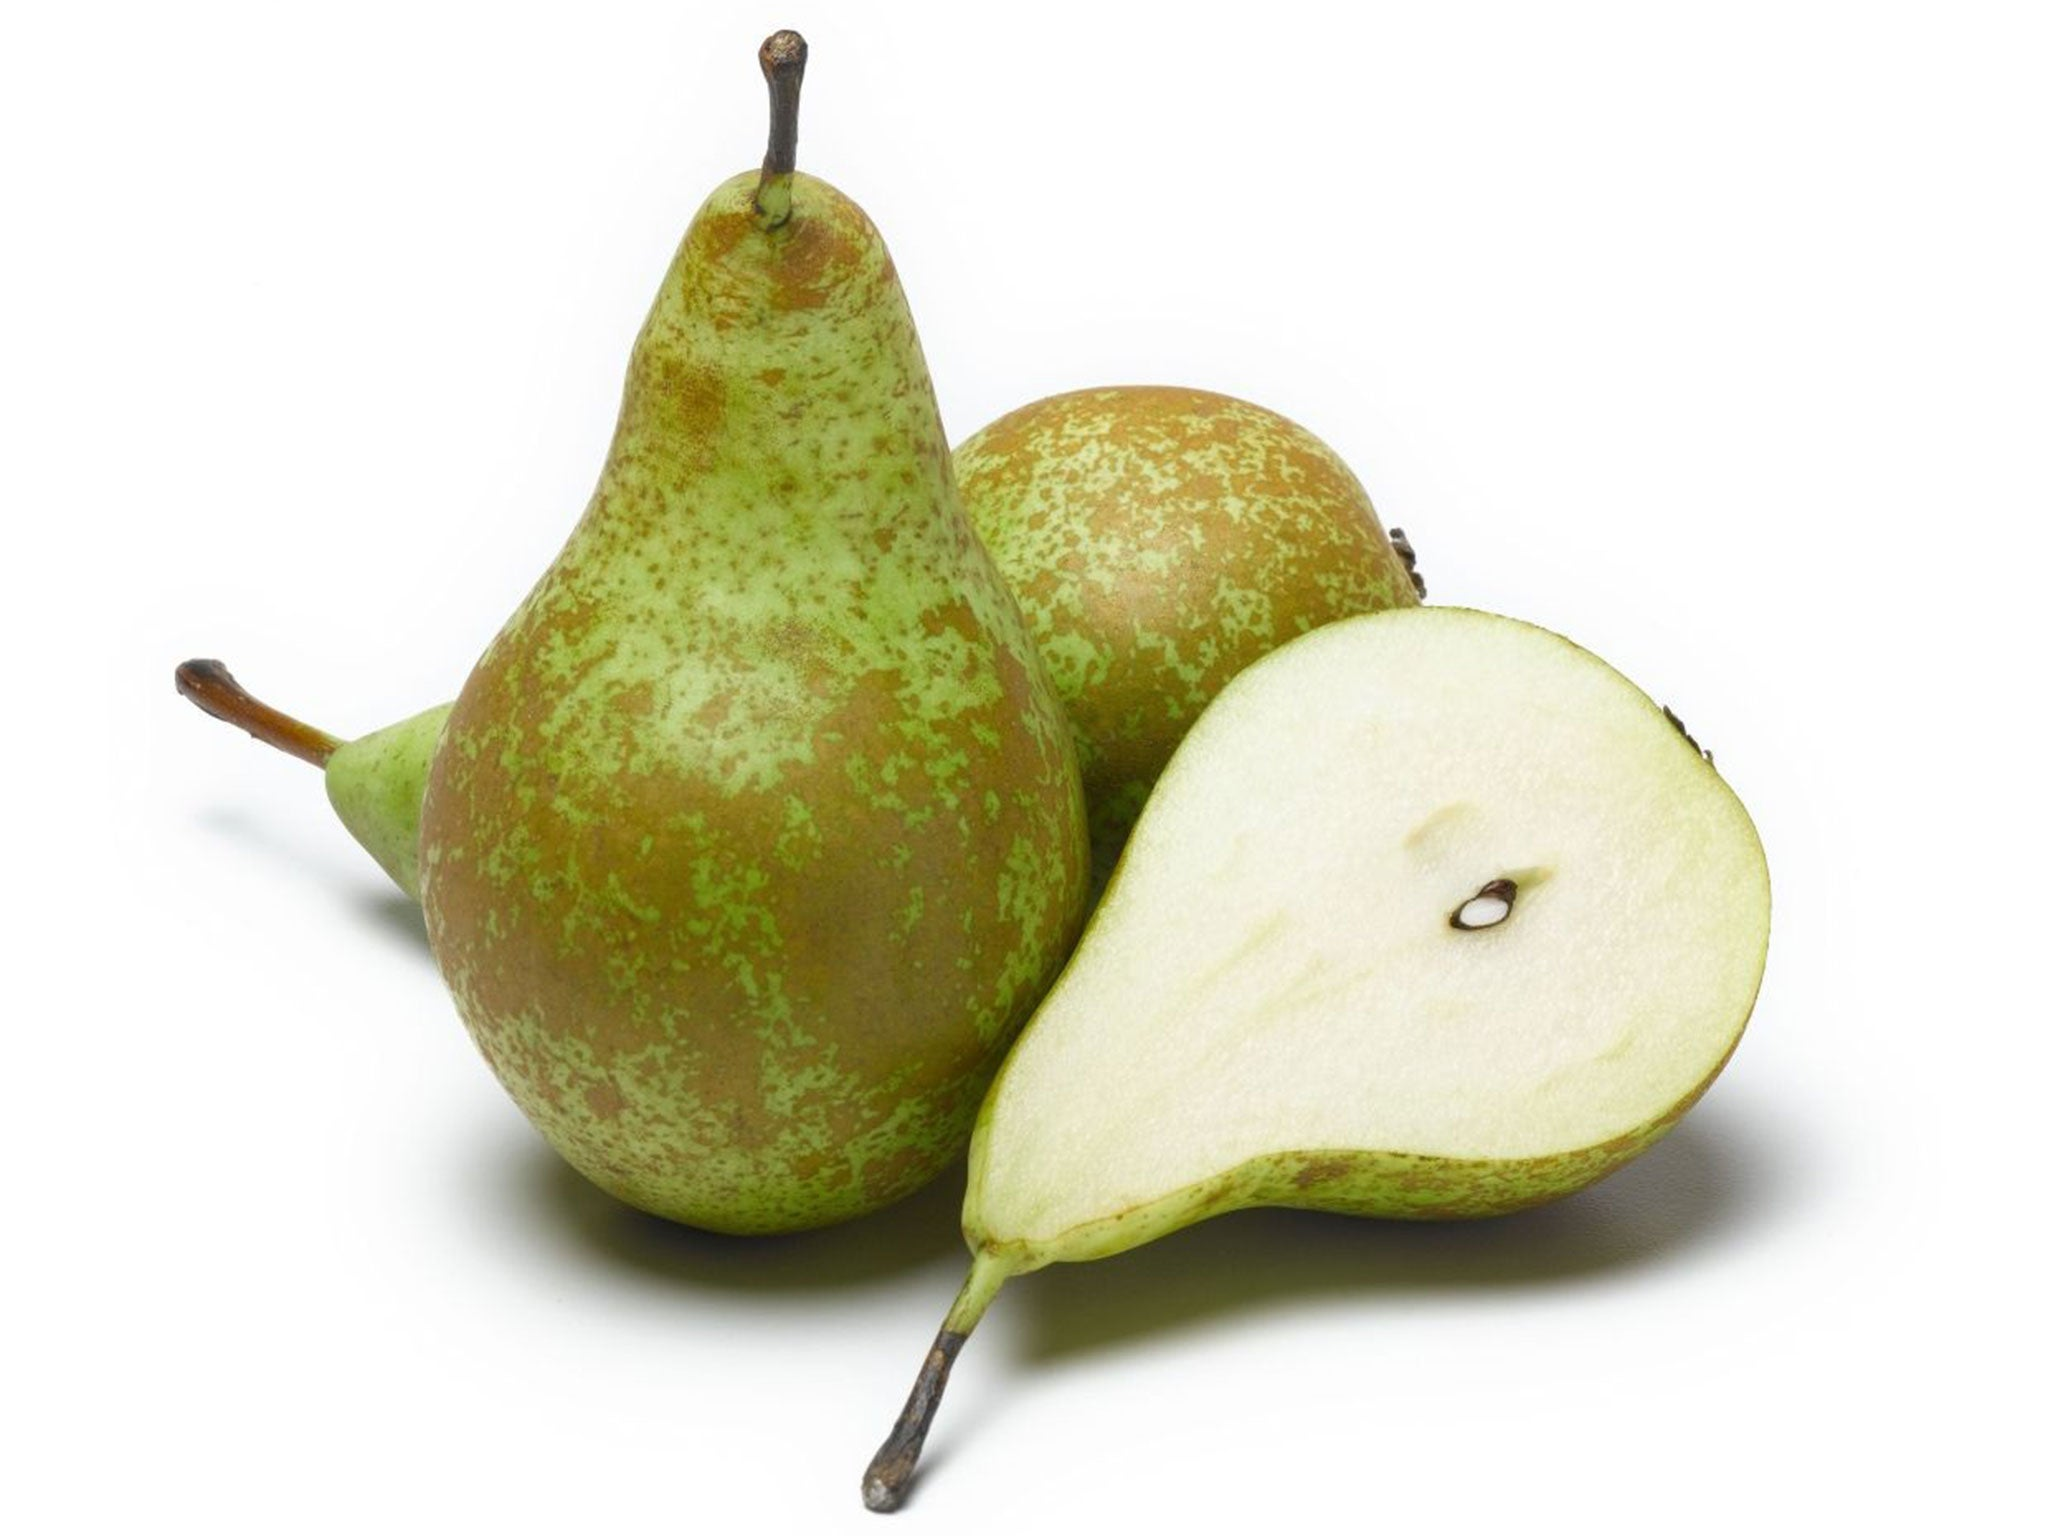 How to beat a pear 10